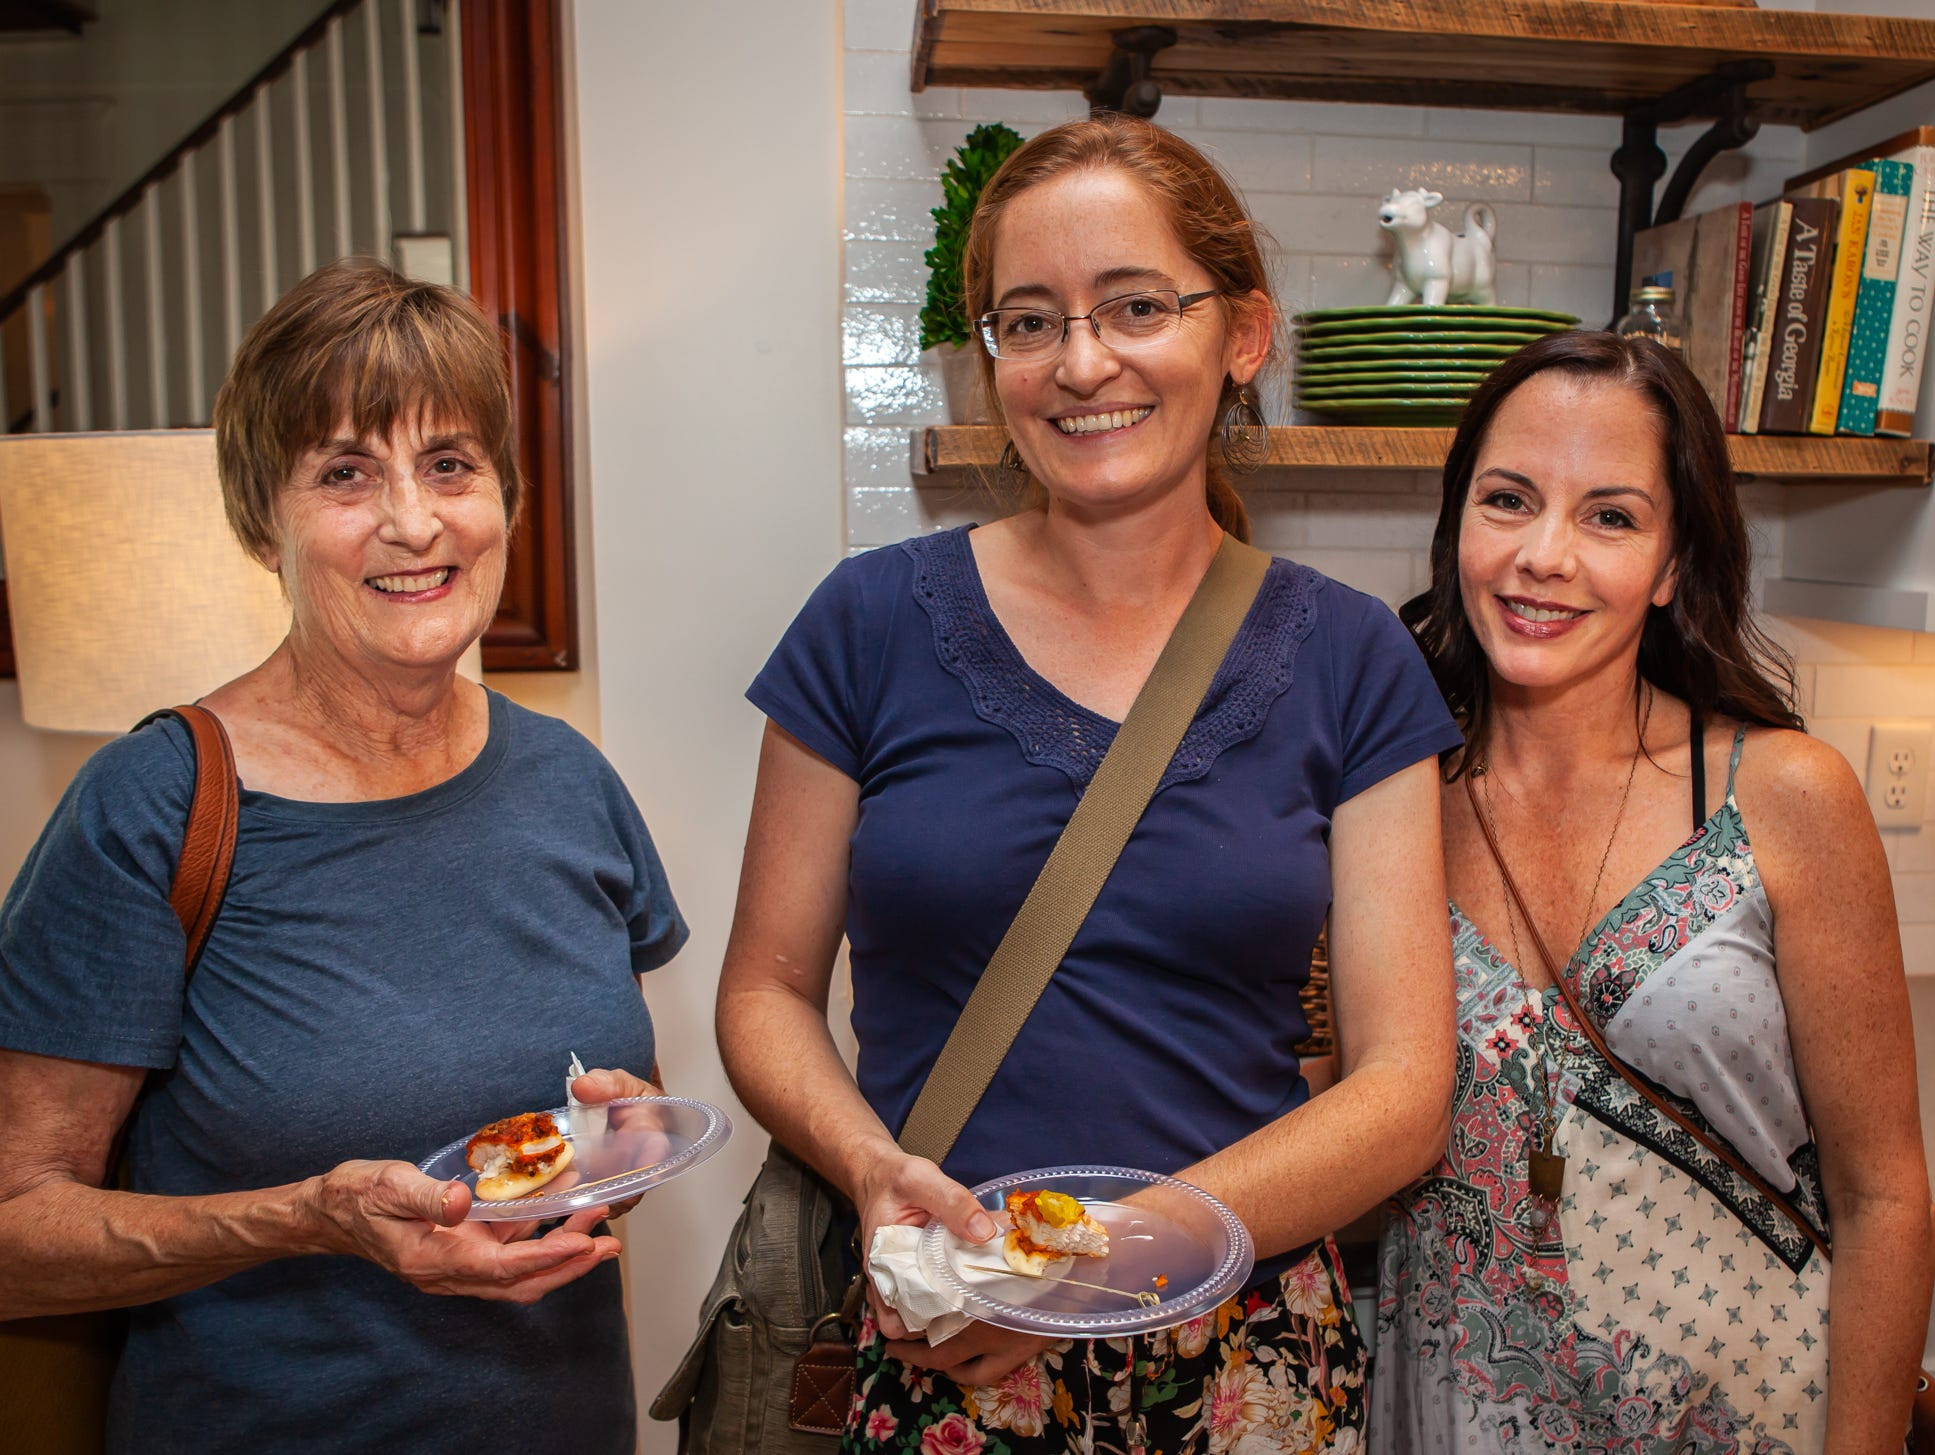 Joan Sutherland, Suzanne Duchacek and Sarah Jakes at An Evening on Lytle, hosted by Main Street Murfreesboro/Rutherford County. The event was held at the home of Rick and Amy Cottle.